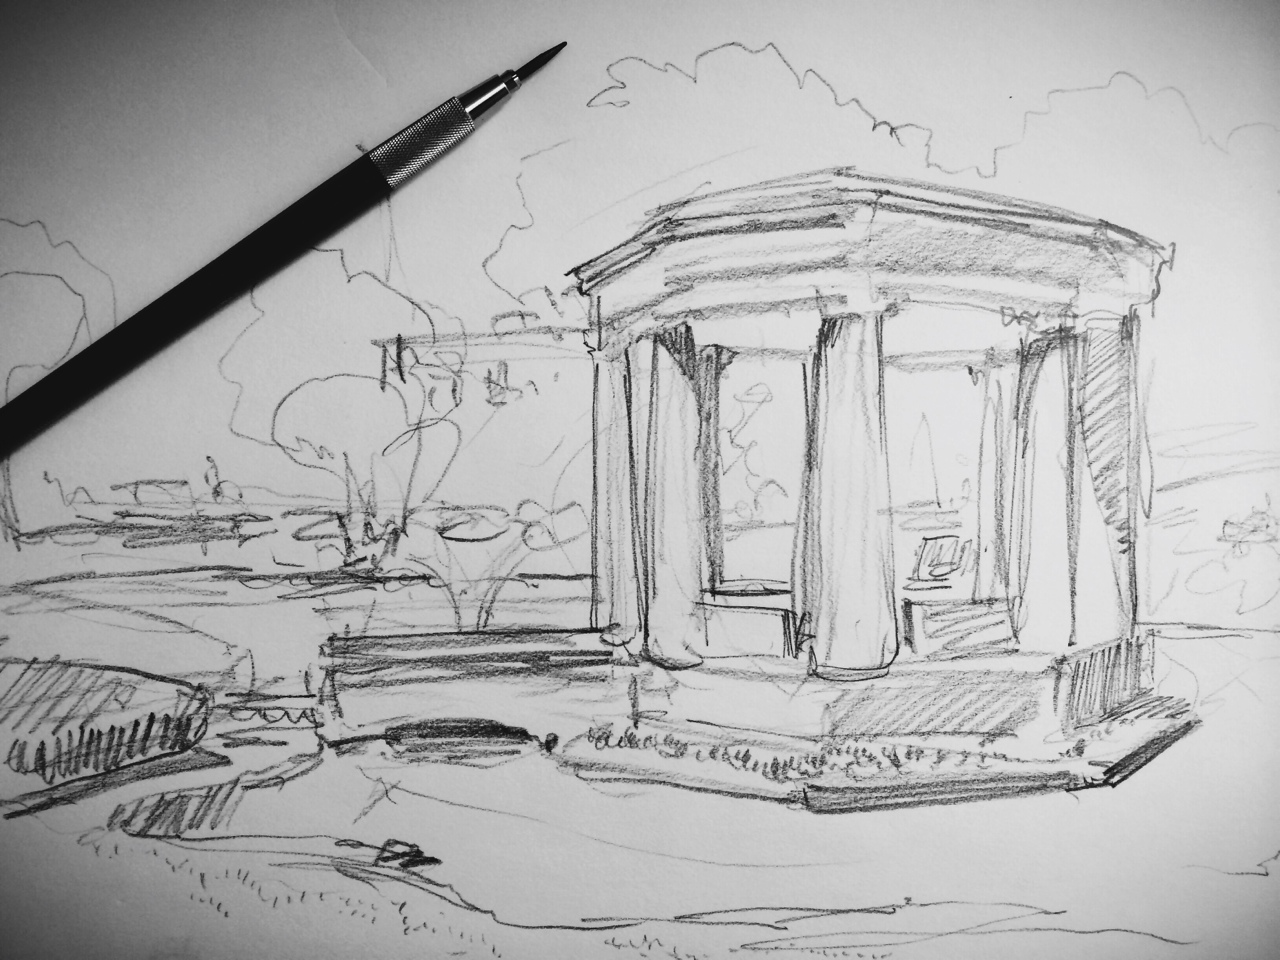 sketching today in Congress Park - The Saratoga Springs War Memorial